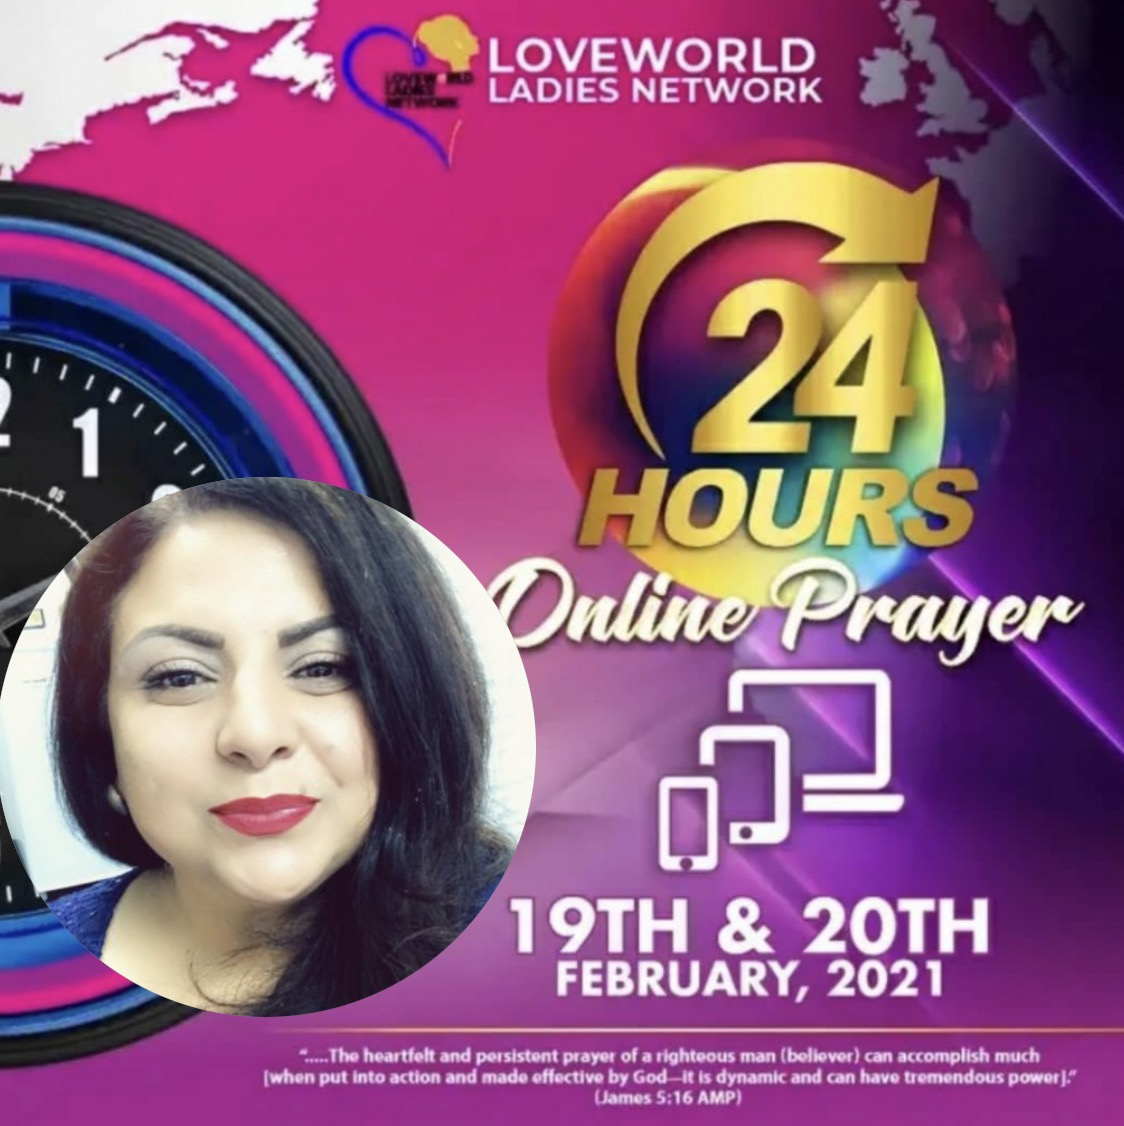 Praying Now! LOVEWORLD Ladies 24